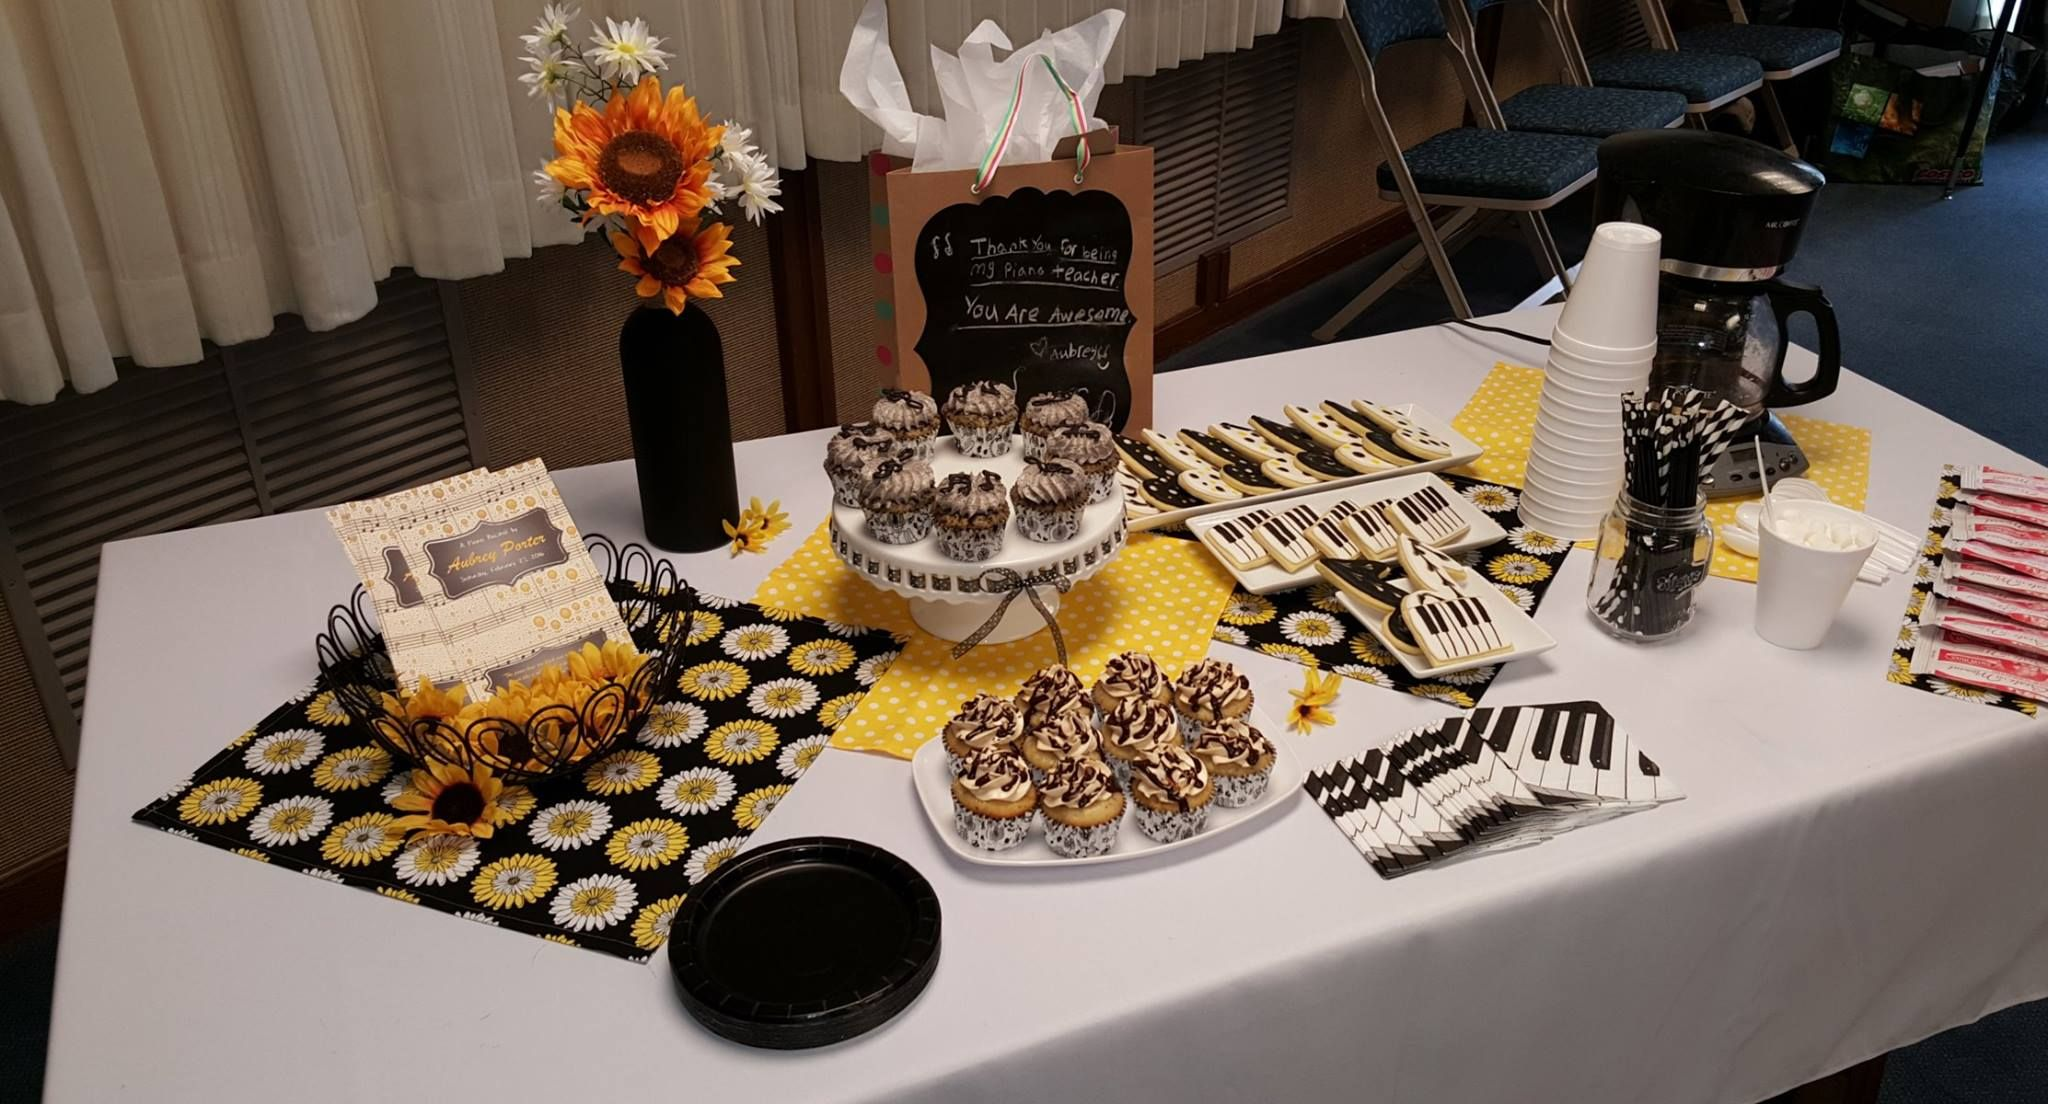 Piano Recital Refreshment Table By Summer S Sweet Treats Piano Recital Piano Refreshments Table